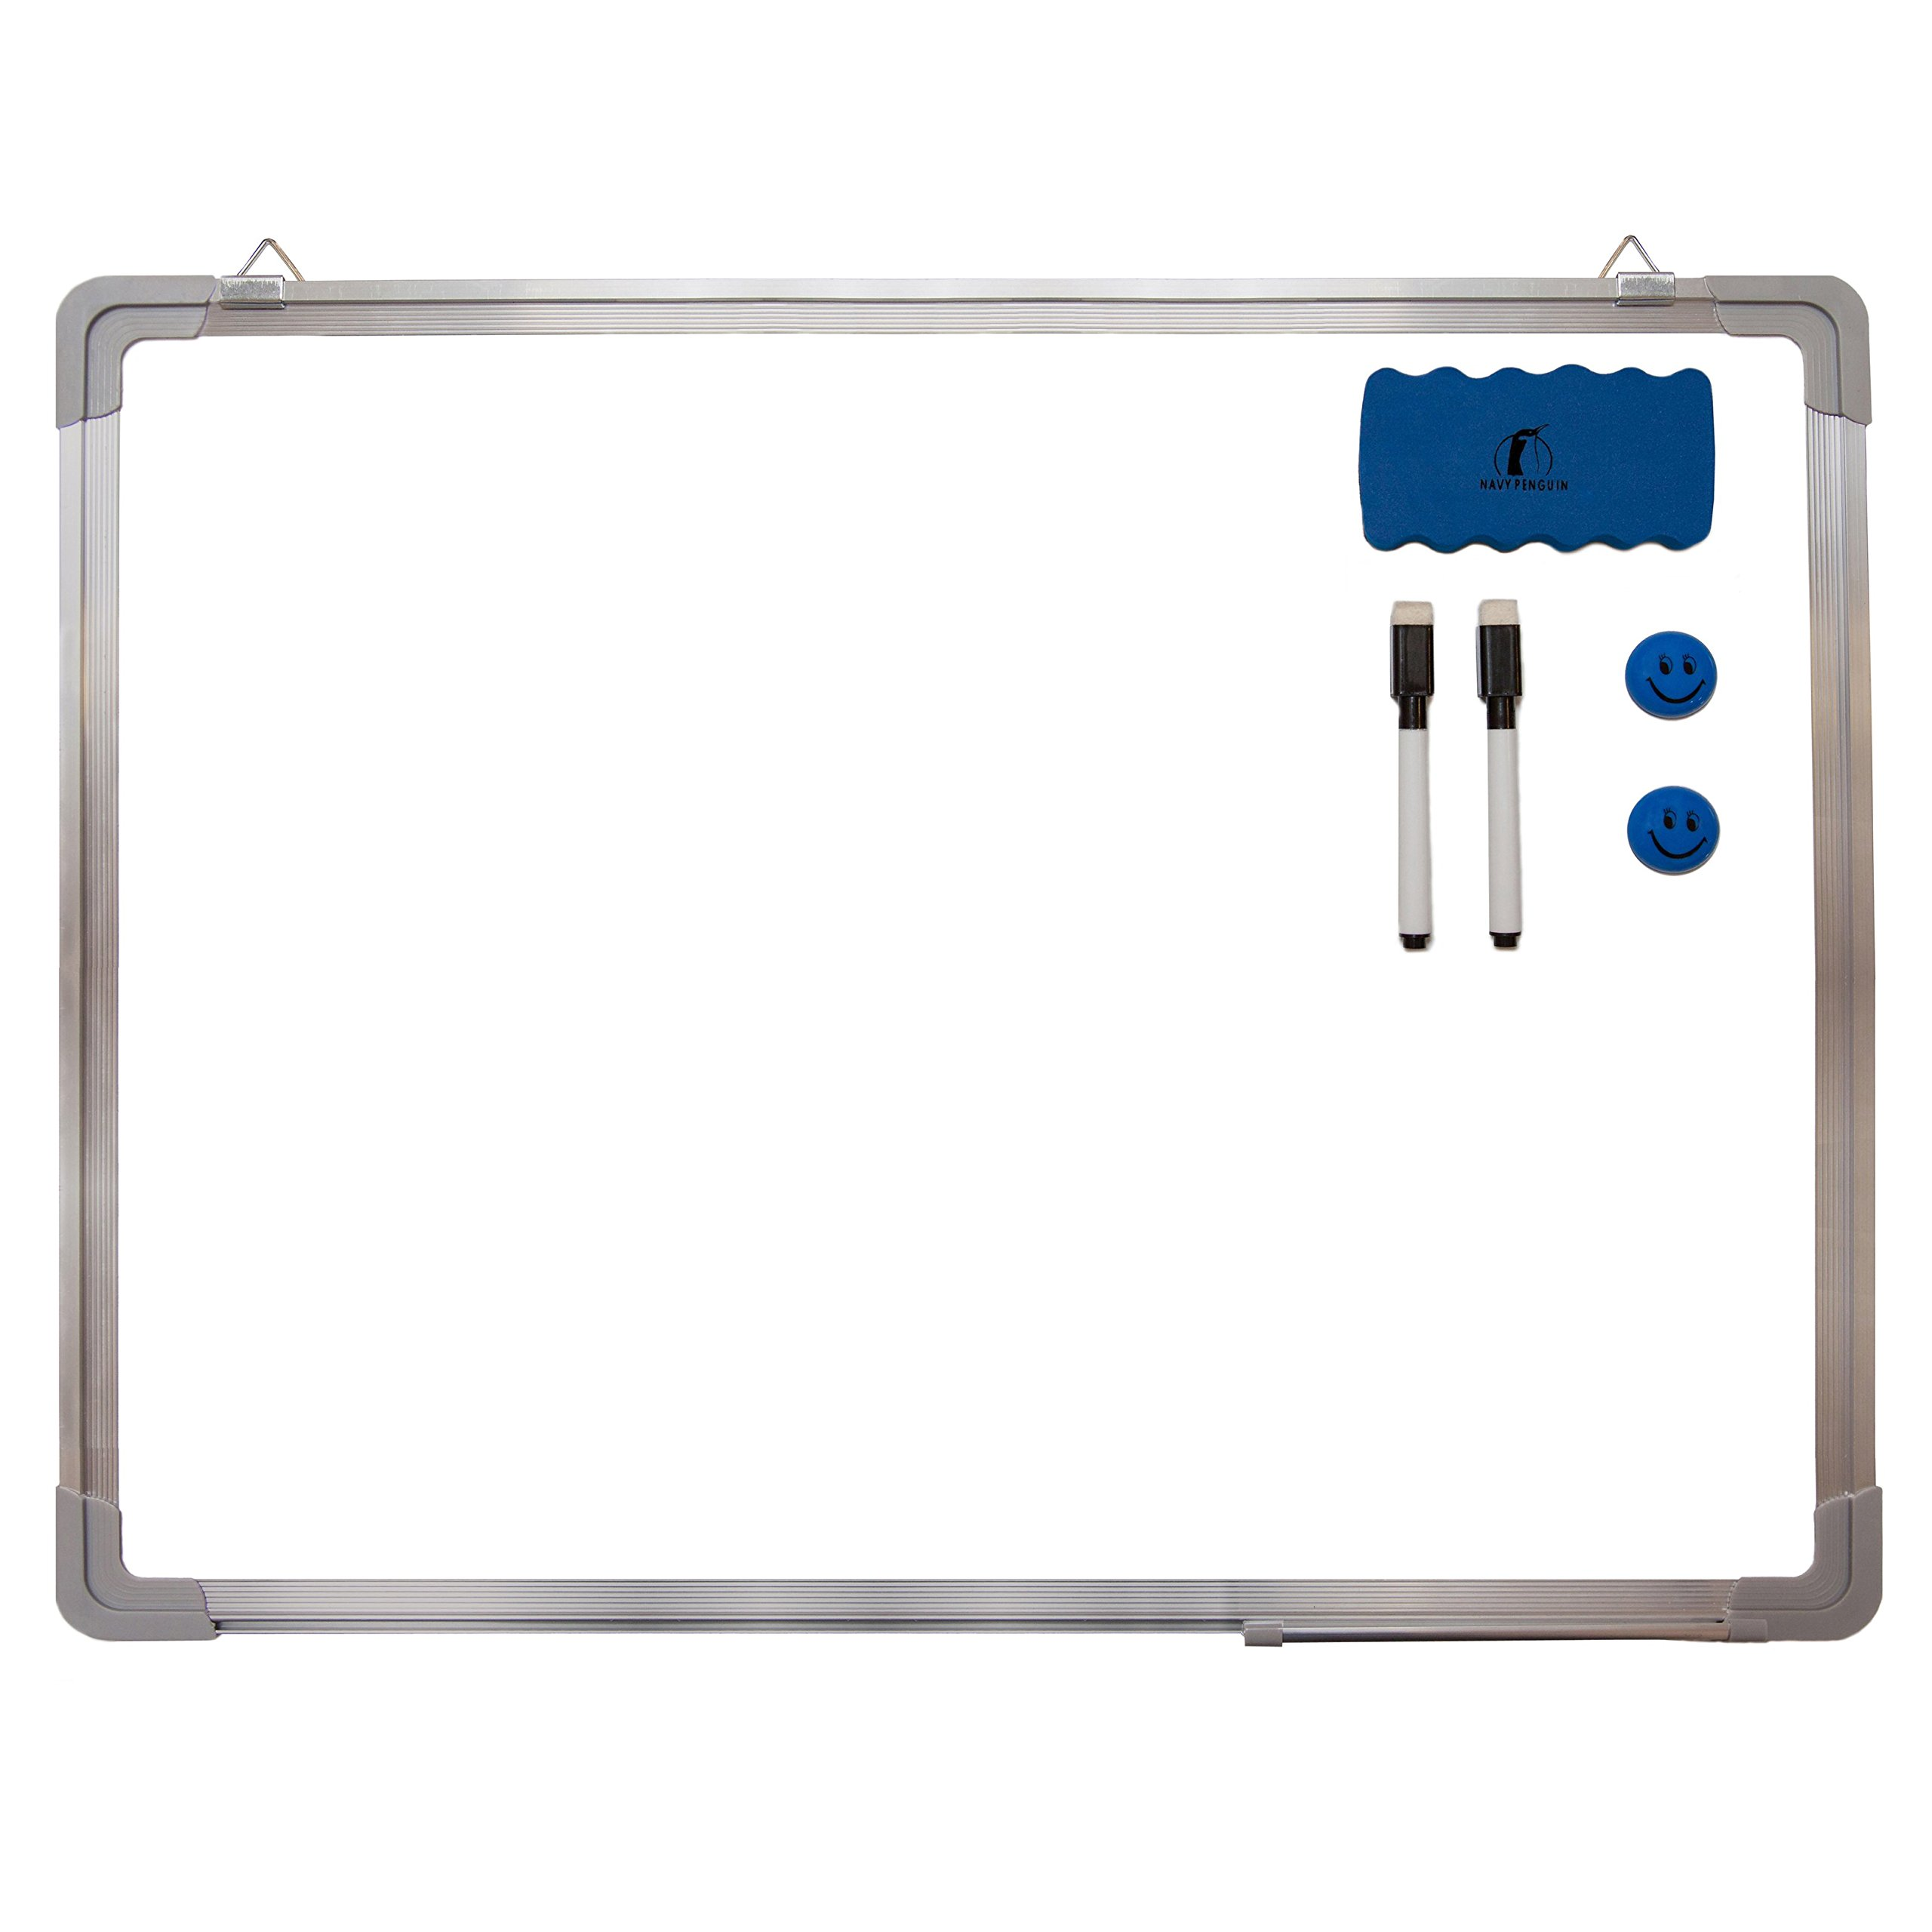 Whiteboard Set - Dry Erase Board 24 x 18'' + 1 Magnetic Dry Eraser, 2 Dry-Erase Black Marker Pens and 2 Magnets - Small White Hanging Message Scoreboard for Home Office School (24x18'' Landscape) by Navy Penguin